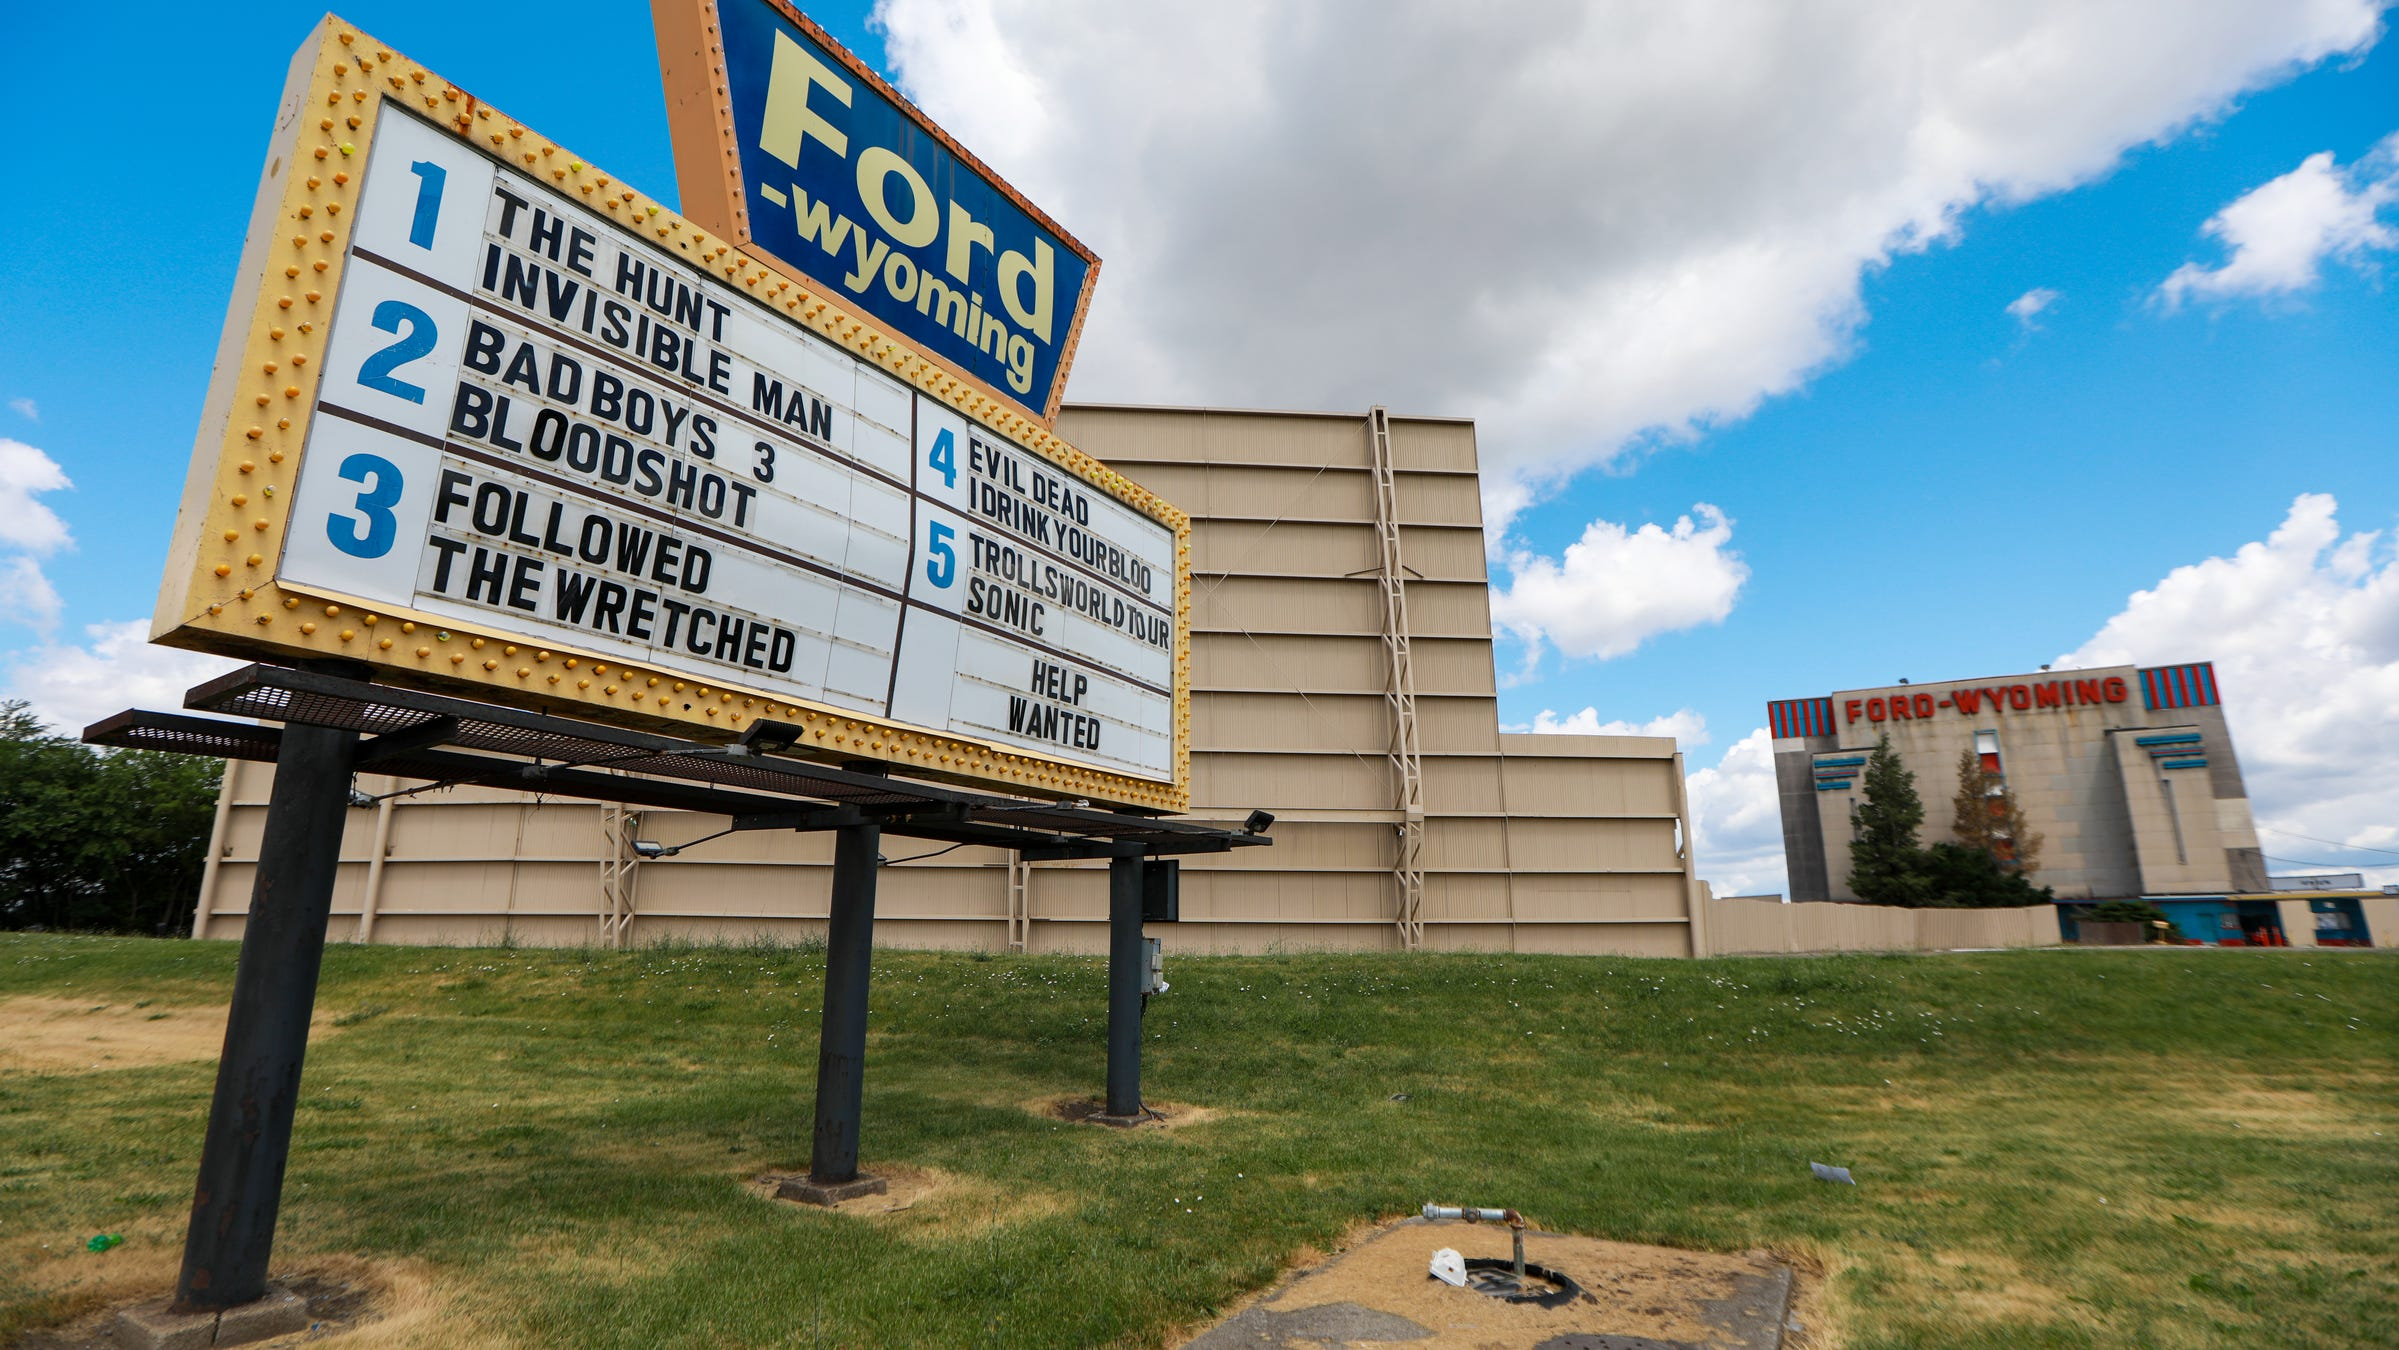 Ford Wyoming Drive In Has Biggest Box Office Gross For Weekend In Us